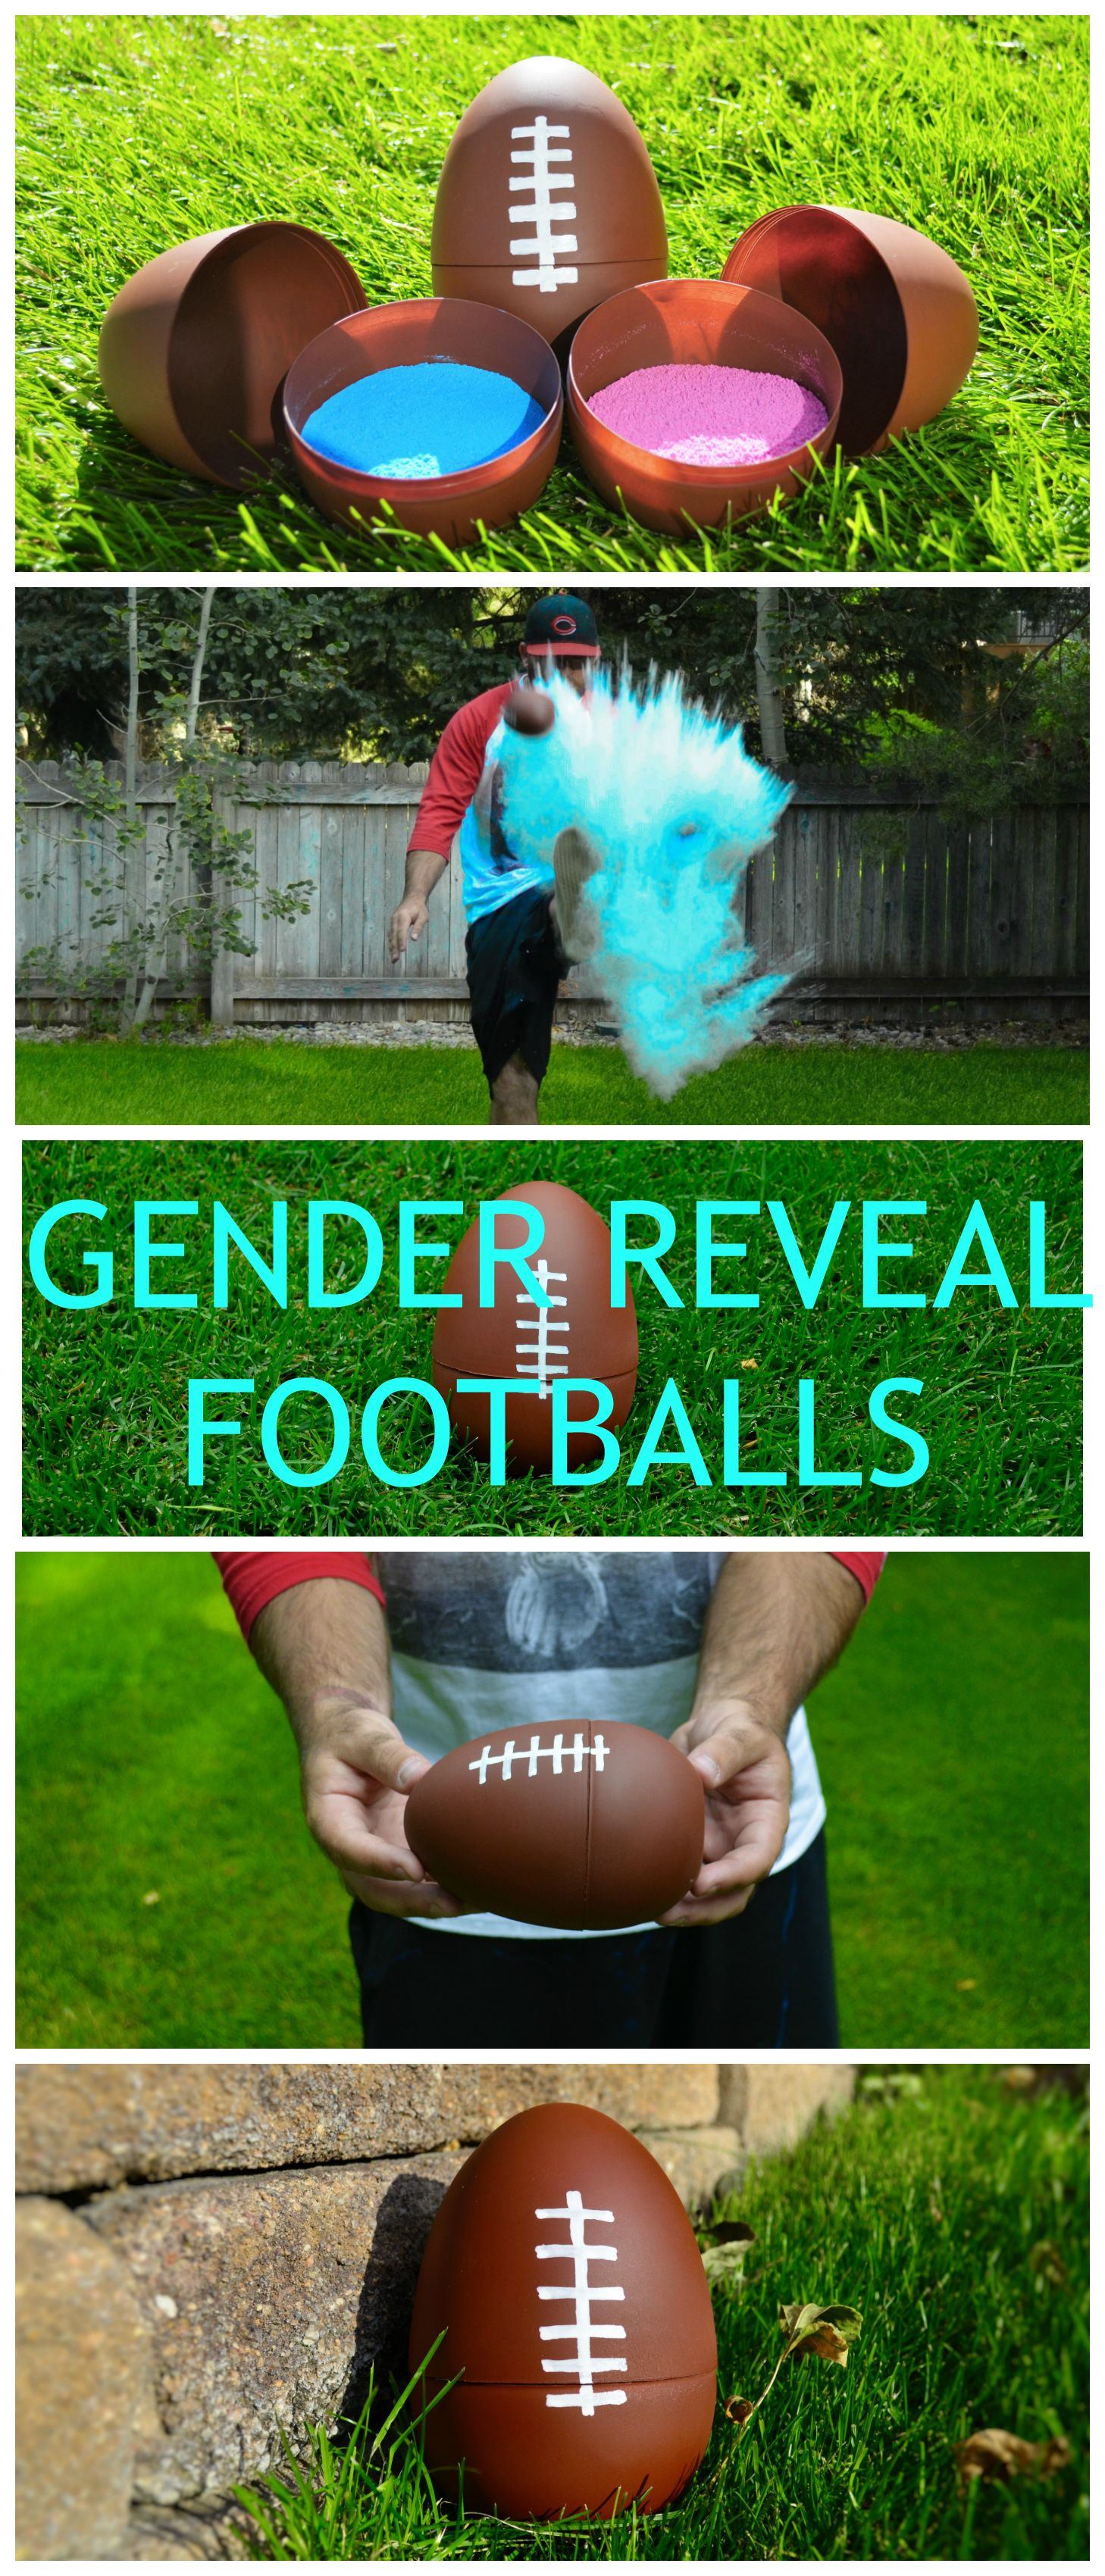 Football NEW DESIGN Gender Reveal Balls With Bright Colors